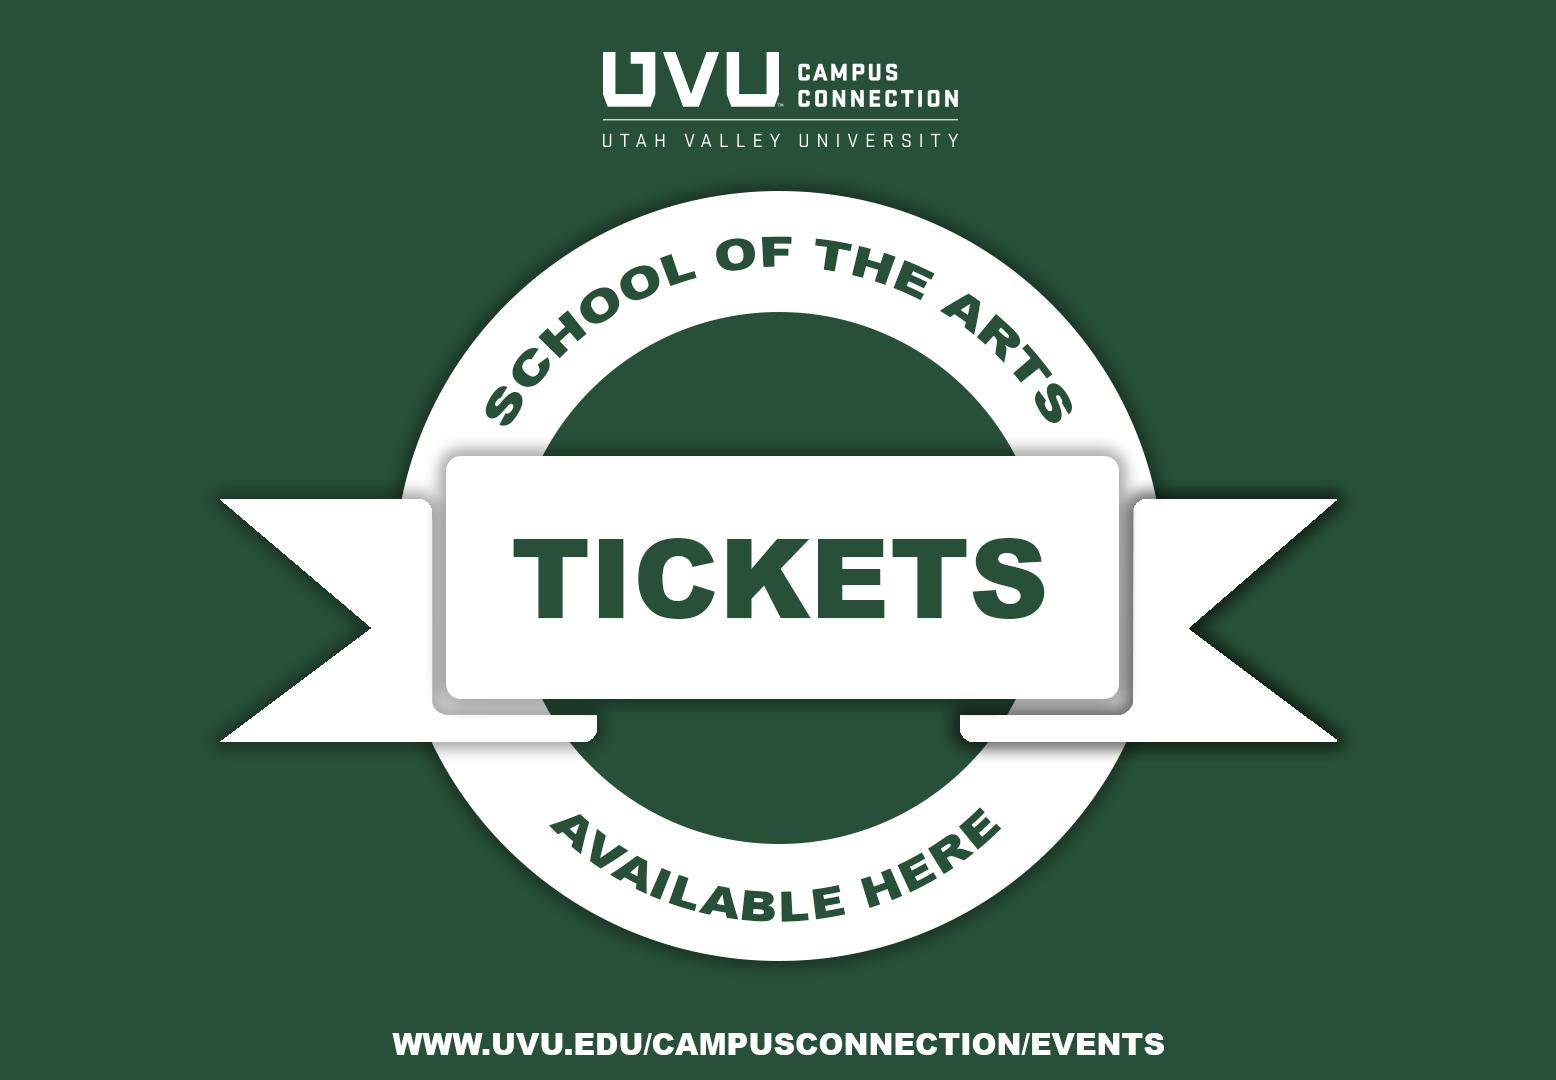 School of the Arts Tickets